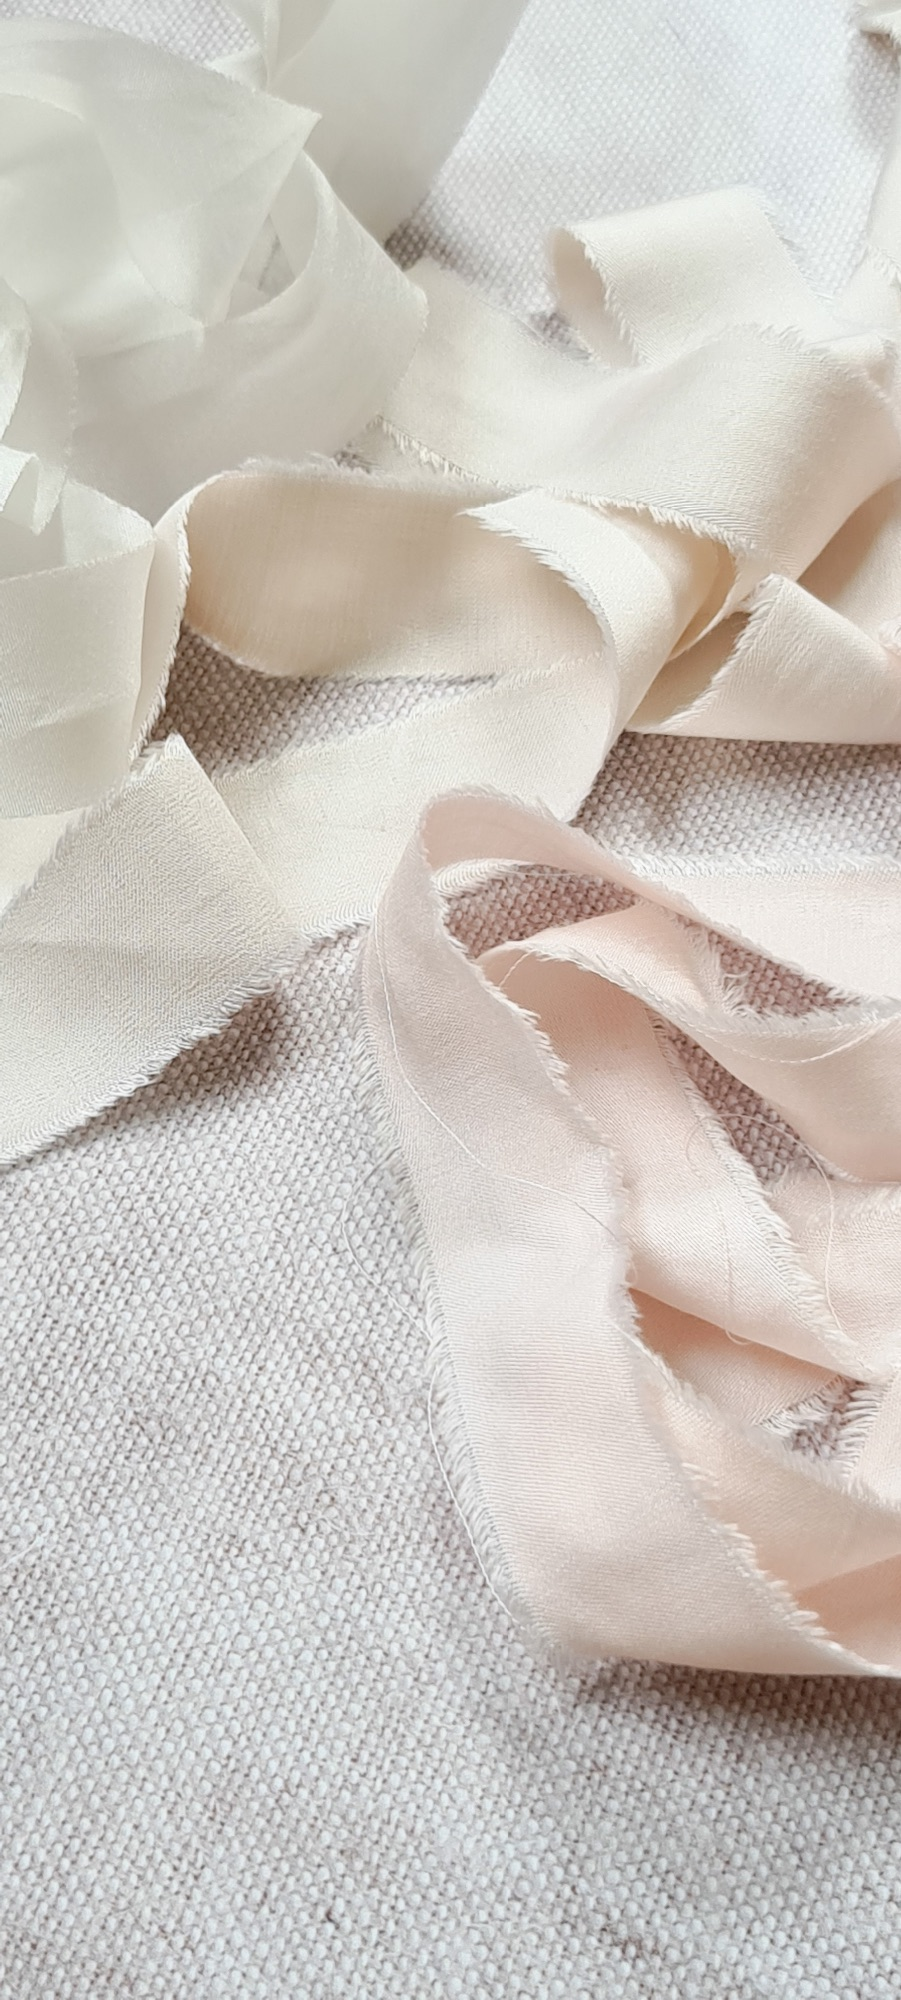 Ethical bamboo silk ribbons